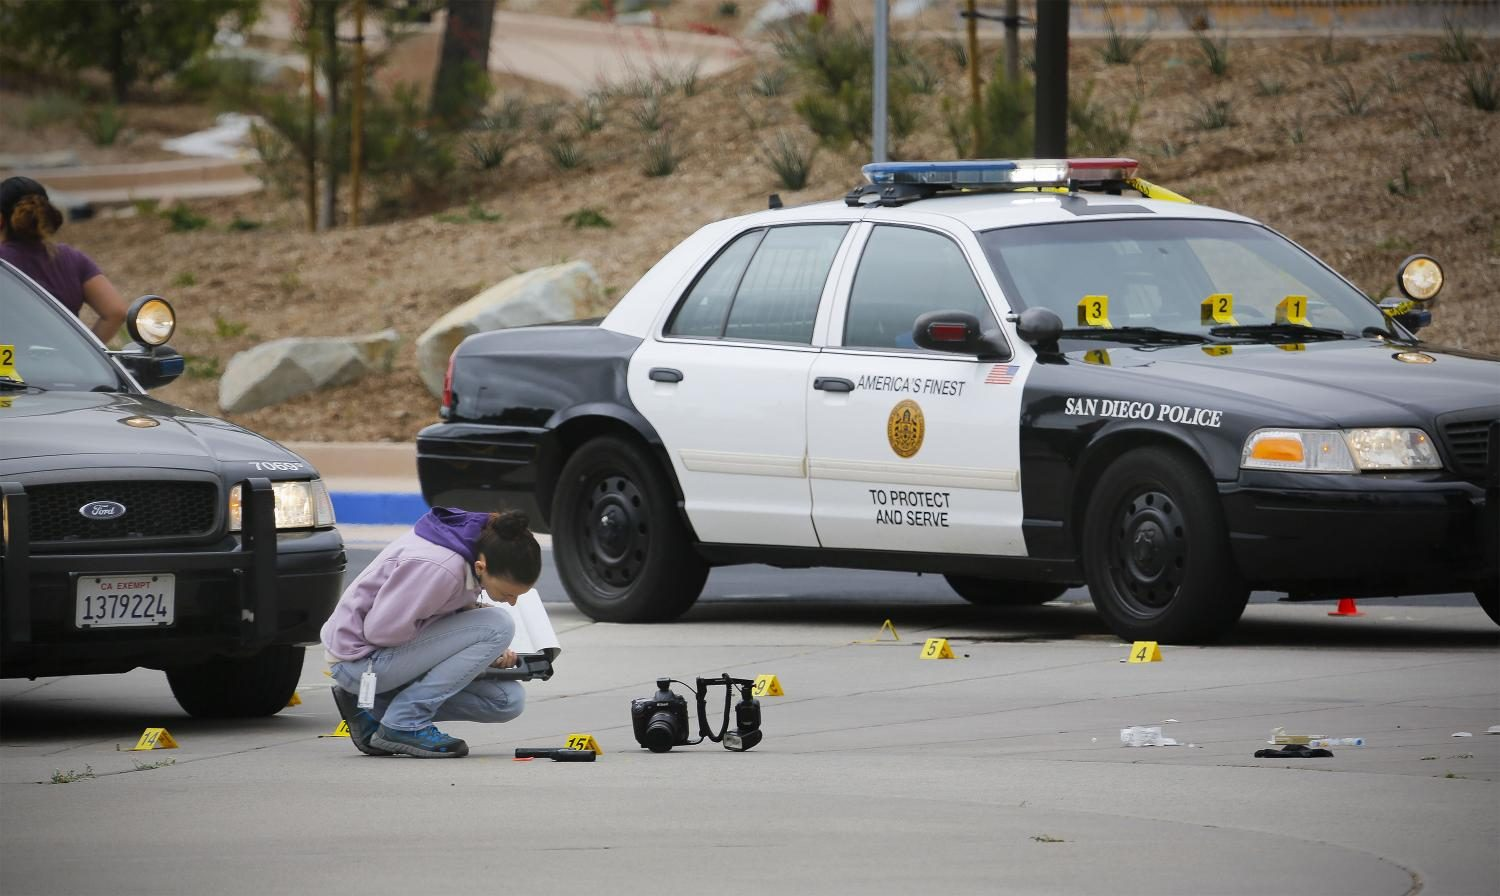 A+member+of+the+San+Diego+Police+Department+examines+what+appears+to+be+a+gun+on+the+ground+at+the+scene+of+a+fatal+police+officer+involved+shooting+of+a+15-year-old+boy+in+one+of+the+parking+lots+in+front+of+Torrey+Pines+High+School%2C+early+Saturday+morning%2C+May+6%2C+2017%2C+in+San+Diego%2C+Calif.+Police+believe+the+boy+called+police%2C+and+when+they+arrived+pointed+a+gun+at+them+and+didn%27t+follow+their+commands+to+drop+it.+It+turns+out+that+the+gun+is+a+semi-automatic+BB+air+pistol.+%28Howard+Lipin%2FSan+Diego+Union-Tribune%2FTNS%29